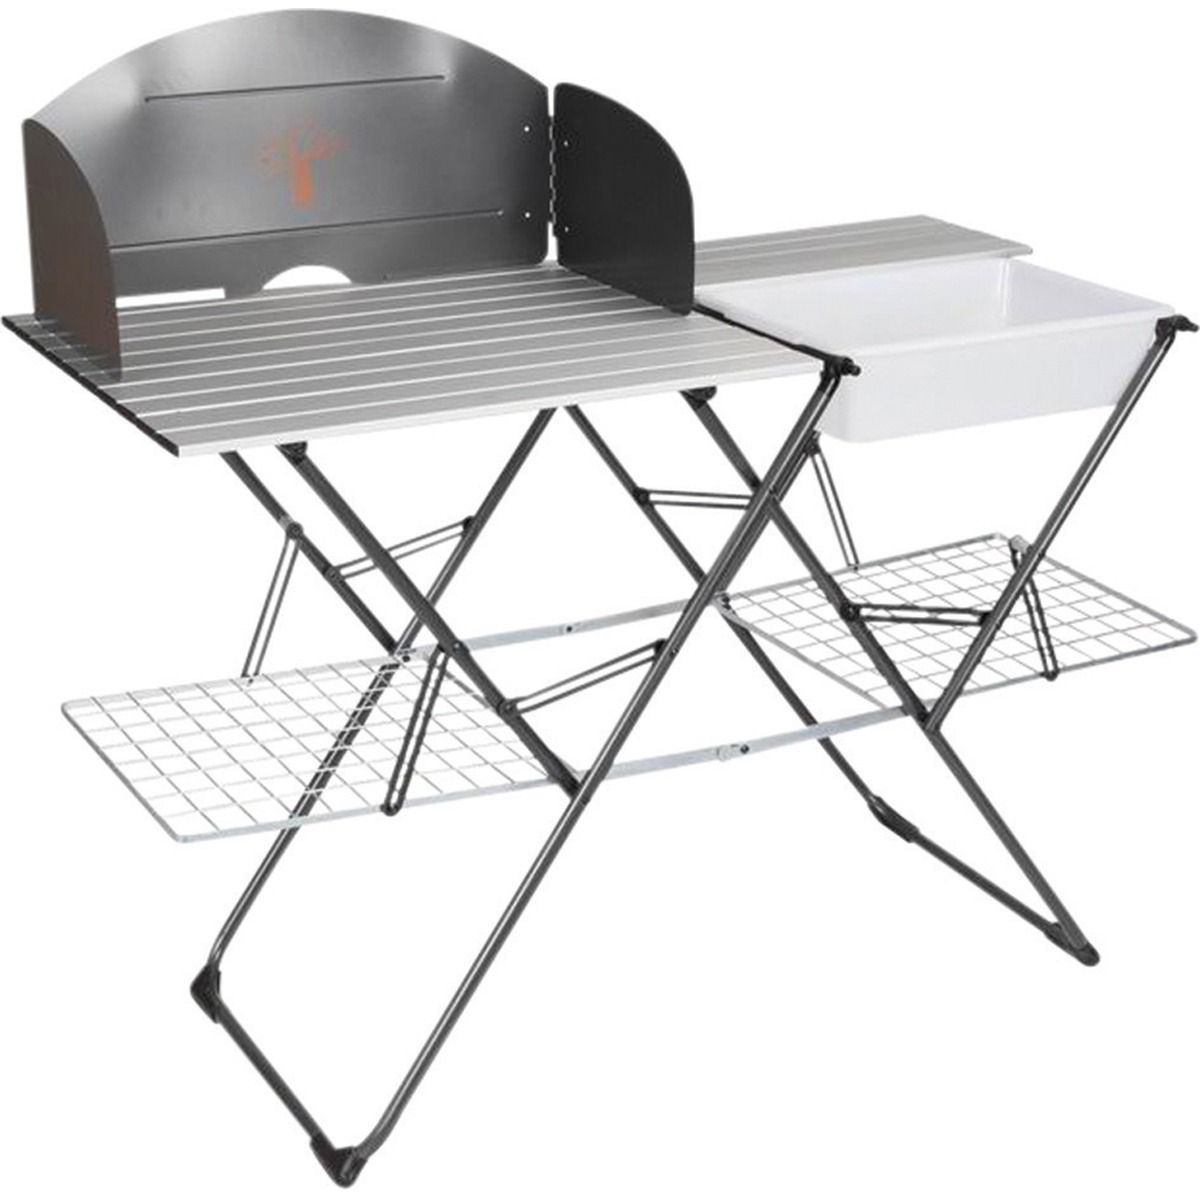 Boab Wash Up Camp Kitchen With Sink Rays Outdoors